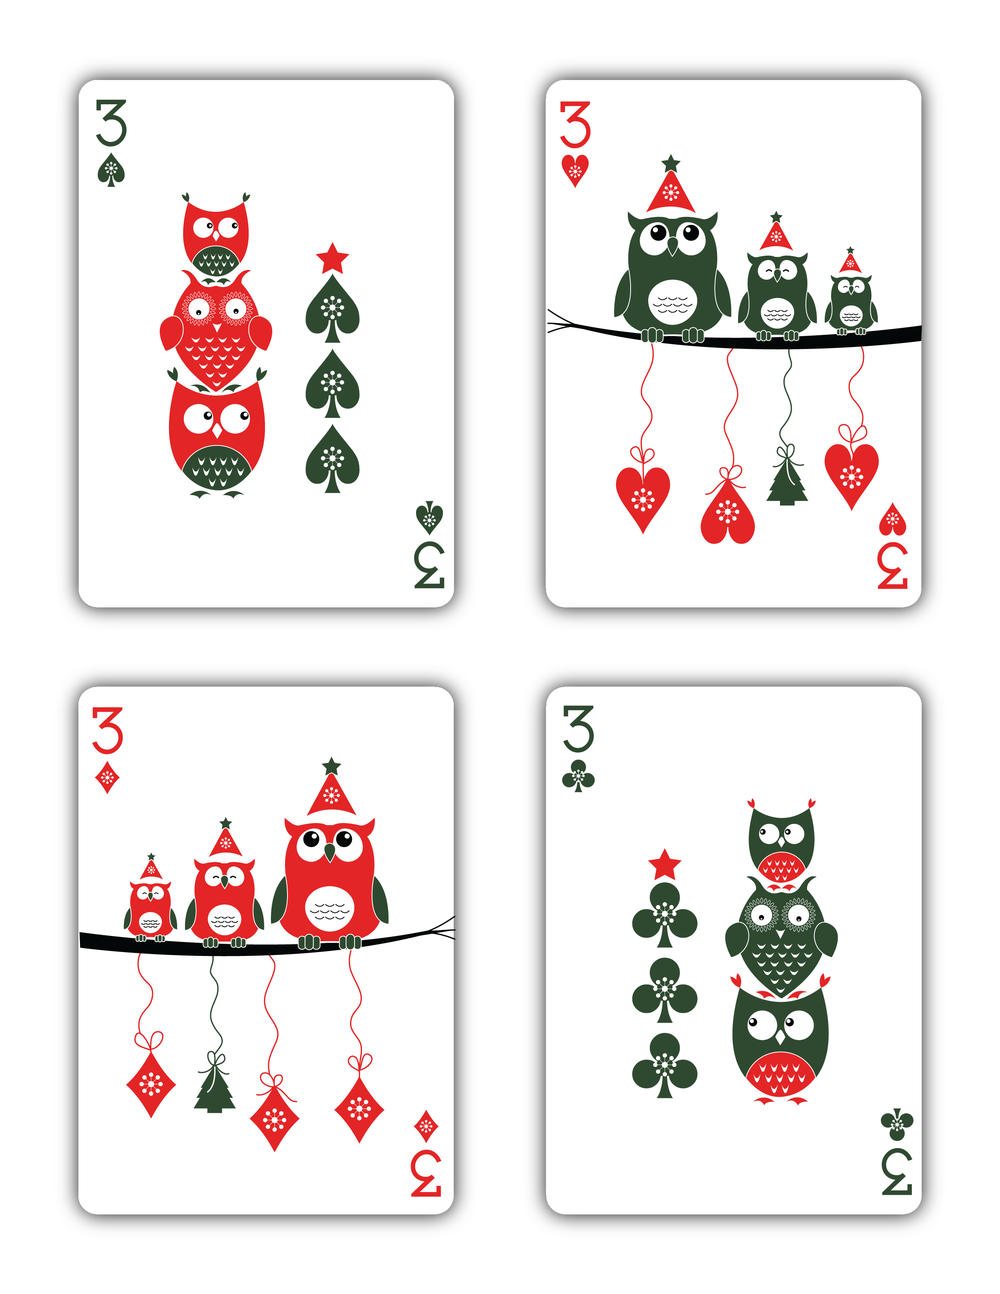 Christmas Playing Cards Printed By USPCC Natalia Silva